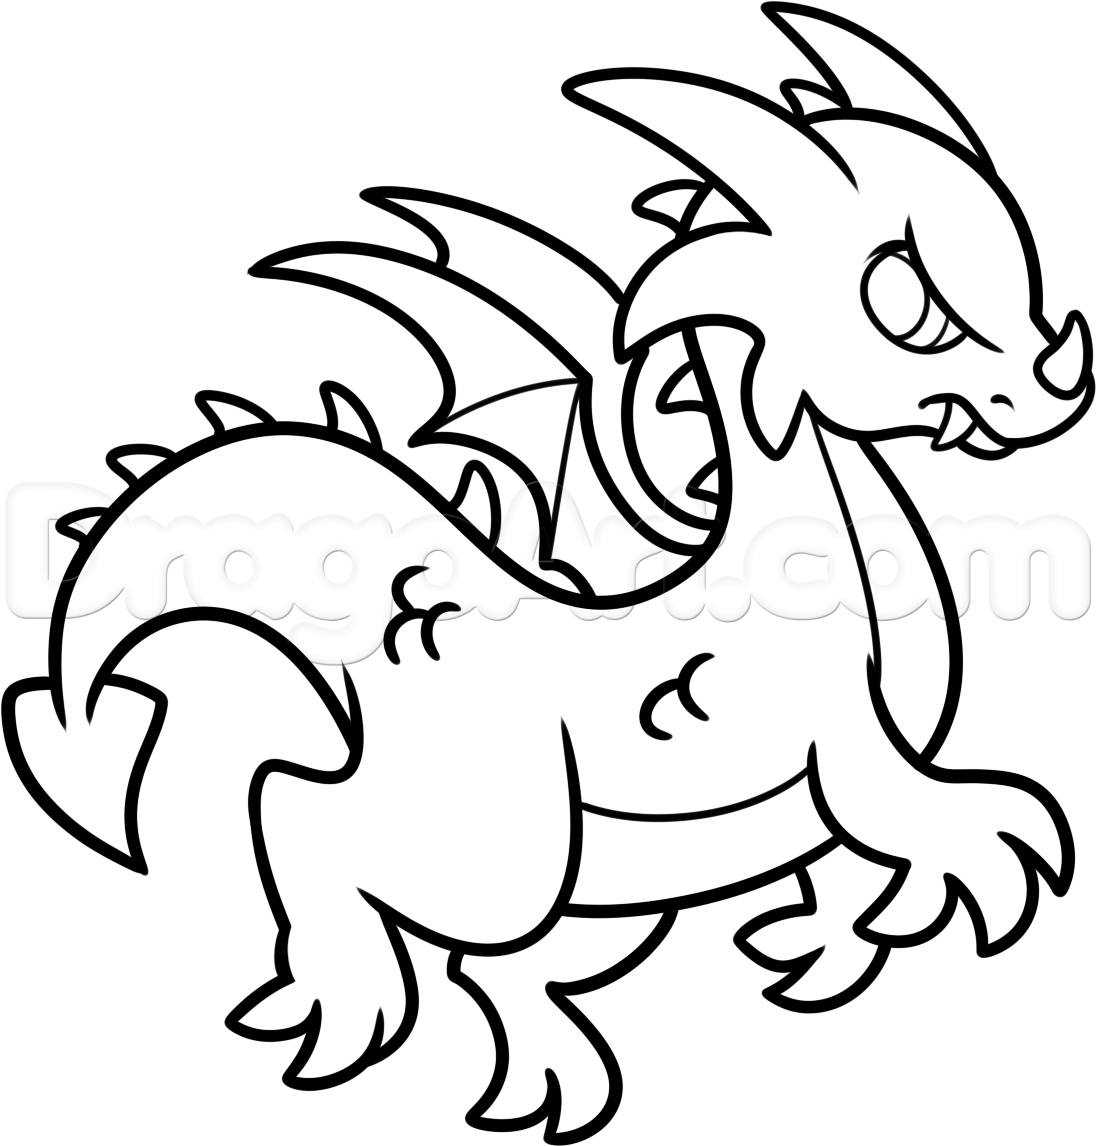 Dragons easy drawings clipart best for Best and easy drawings